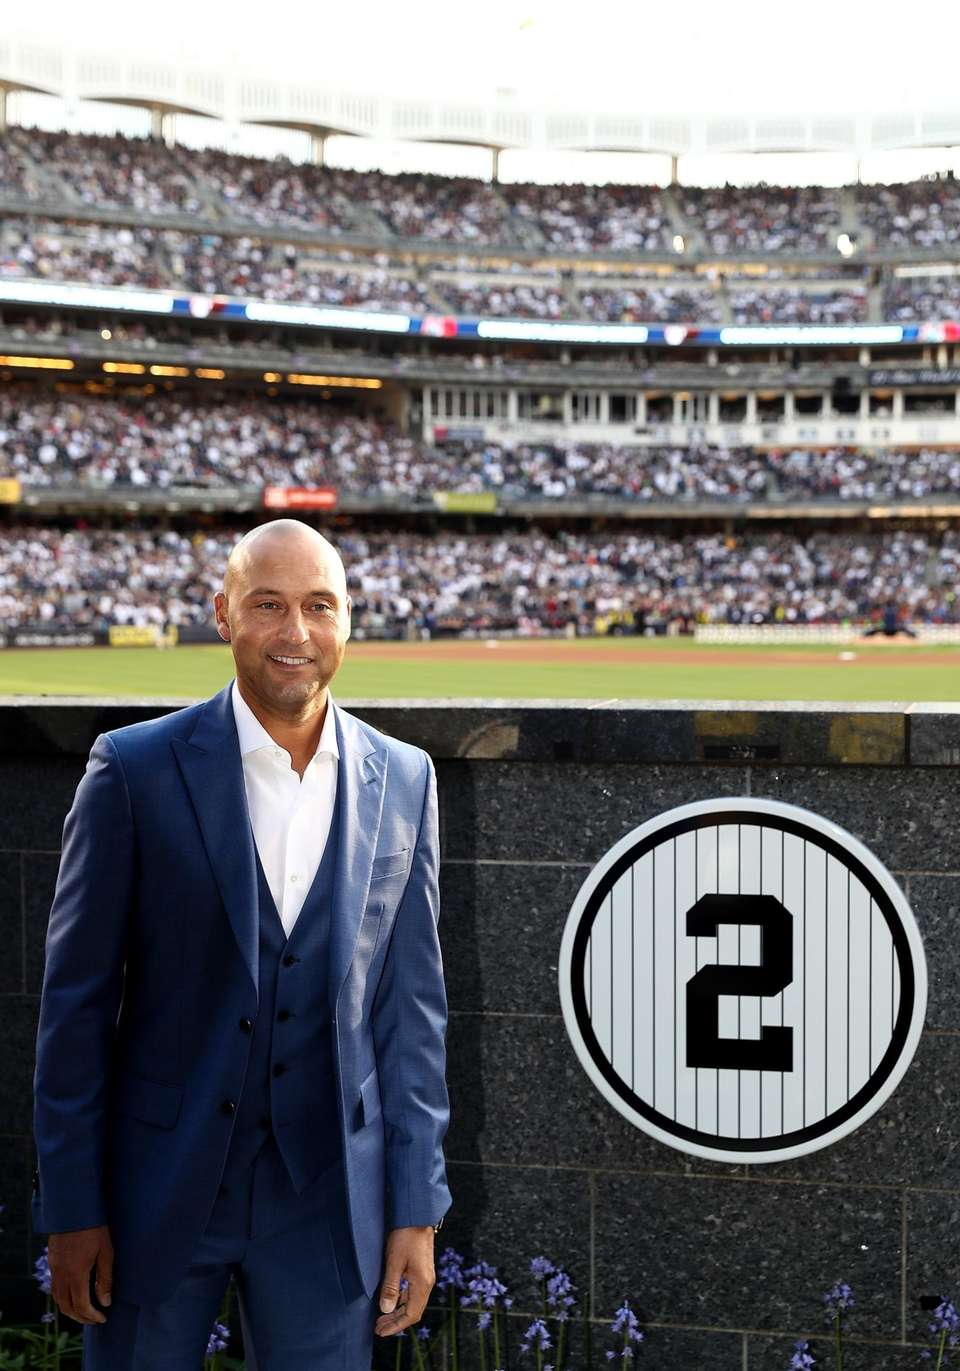 Retired New York Yankees captain Derek Jeter next